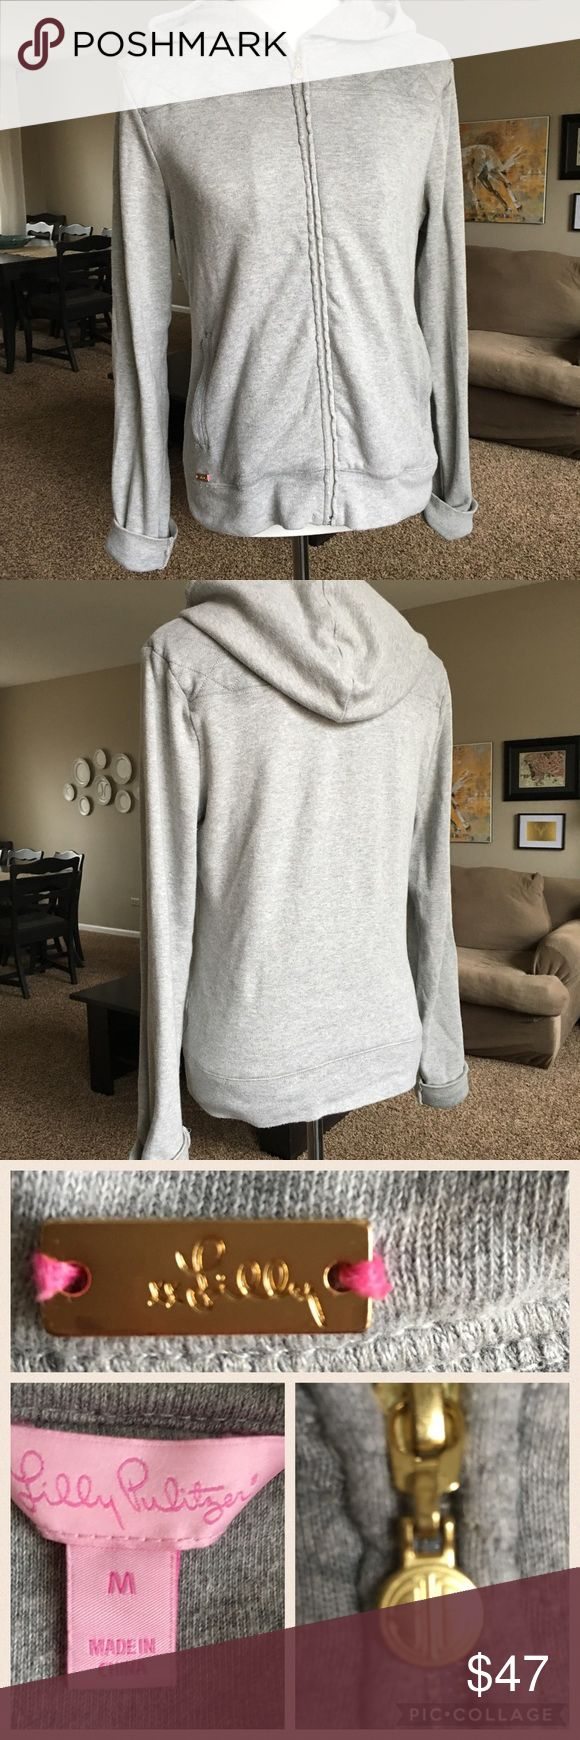 "Lilly Pulitzer Grey Zip Up Sweatshirt w/Hood Sz. M Hard to find LILLY PULTIZER grey hoody zip up sweatshirt.  Quilted shoulder detailing.  Super soft and high quality 100% cotton.  In great condition with a minor flaw *see last pic tiny stain on sleeve near elbow*   Armpit - Armpit approx  21.5"" Length 24""     No trades.  Offers welcomed. Lilly Pulitzer Tops Sweatshirts & Hoodies"